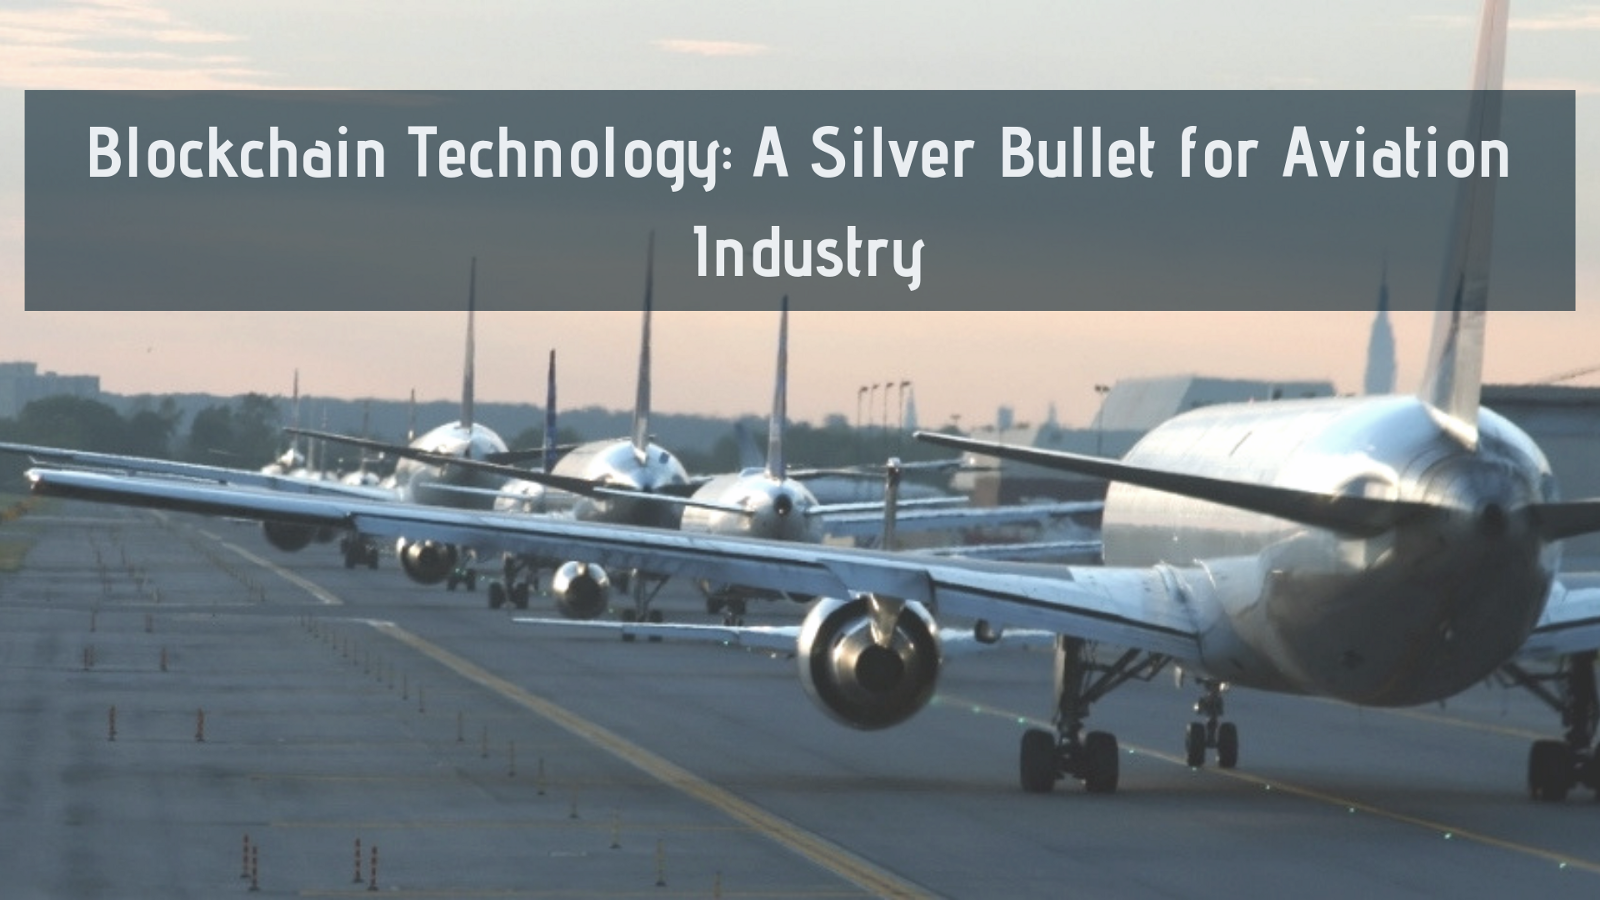 /blockchain-technology-a-silver-bullet-for-aviation-industry-cdc8161fd048 feature image